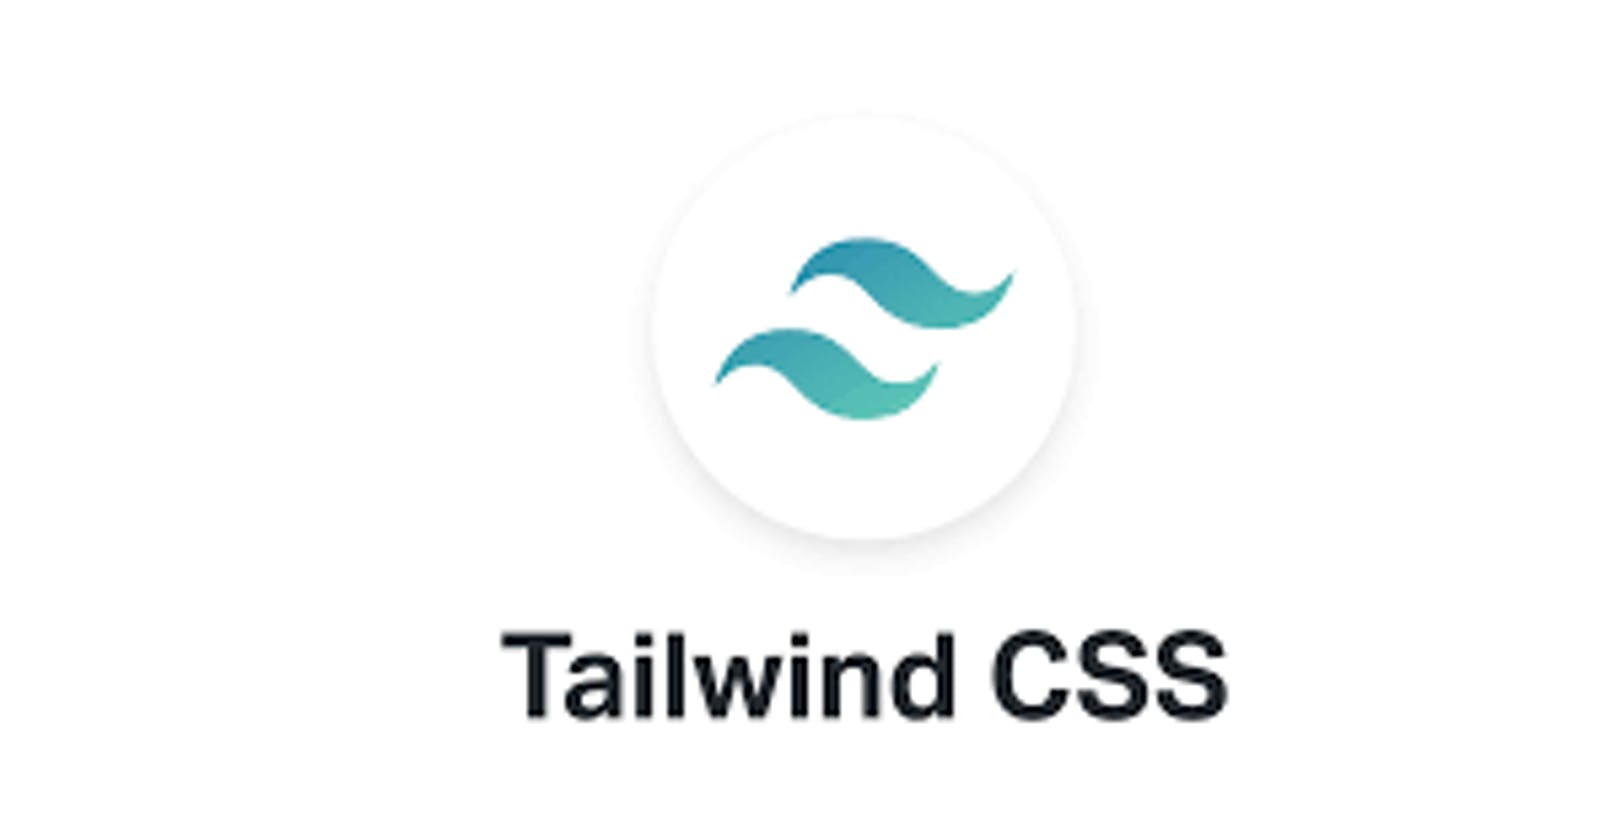 Transitions and Animation in TailwindCSS